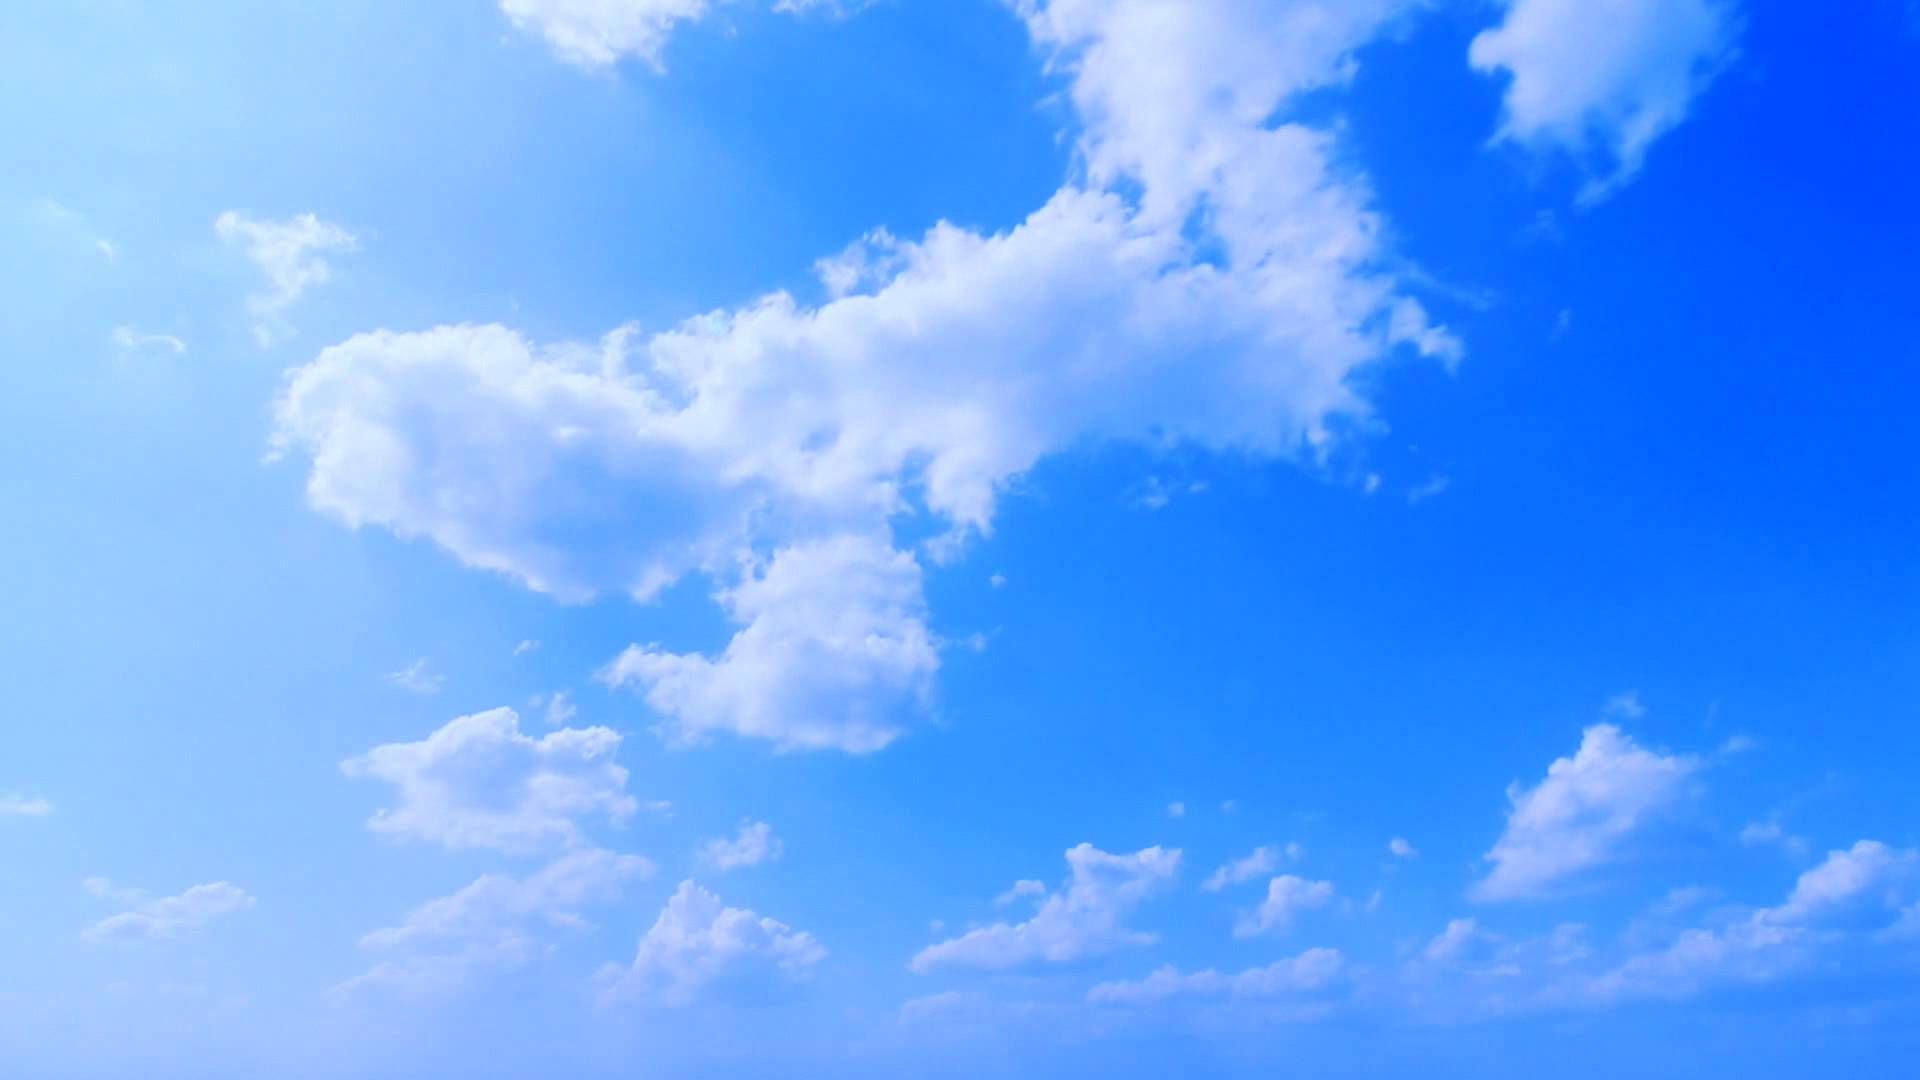 Deep Blue Sky Clouds Timelapse Free Footage Full Hd 1080p Blue Sky Wallpaper Sky Photos Blue Sky Clouds